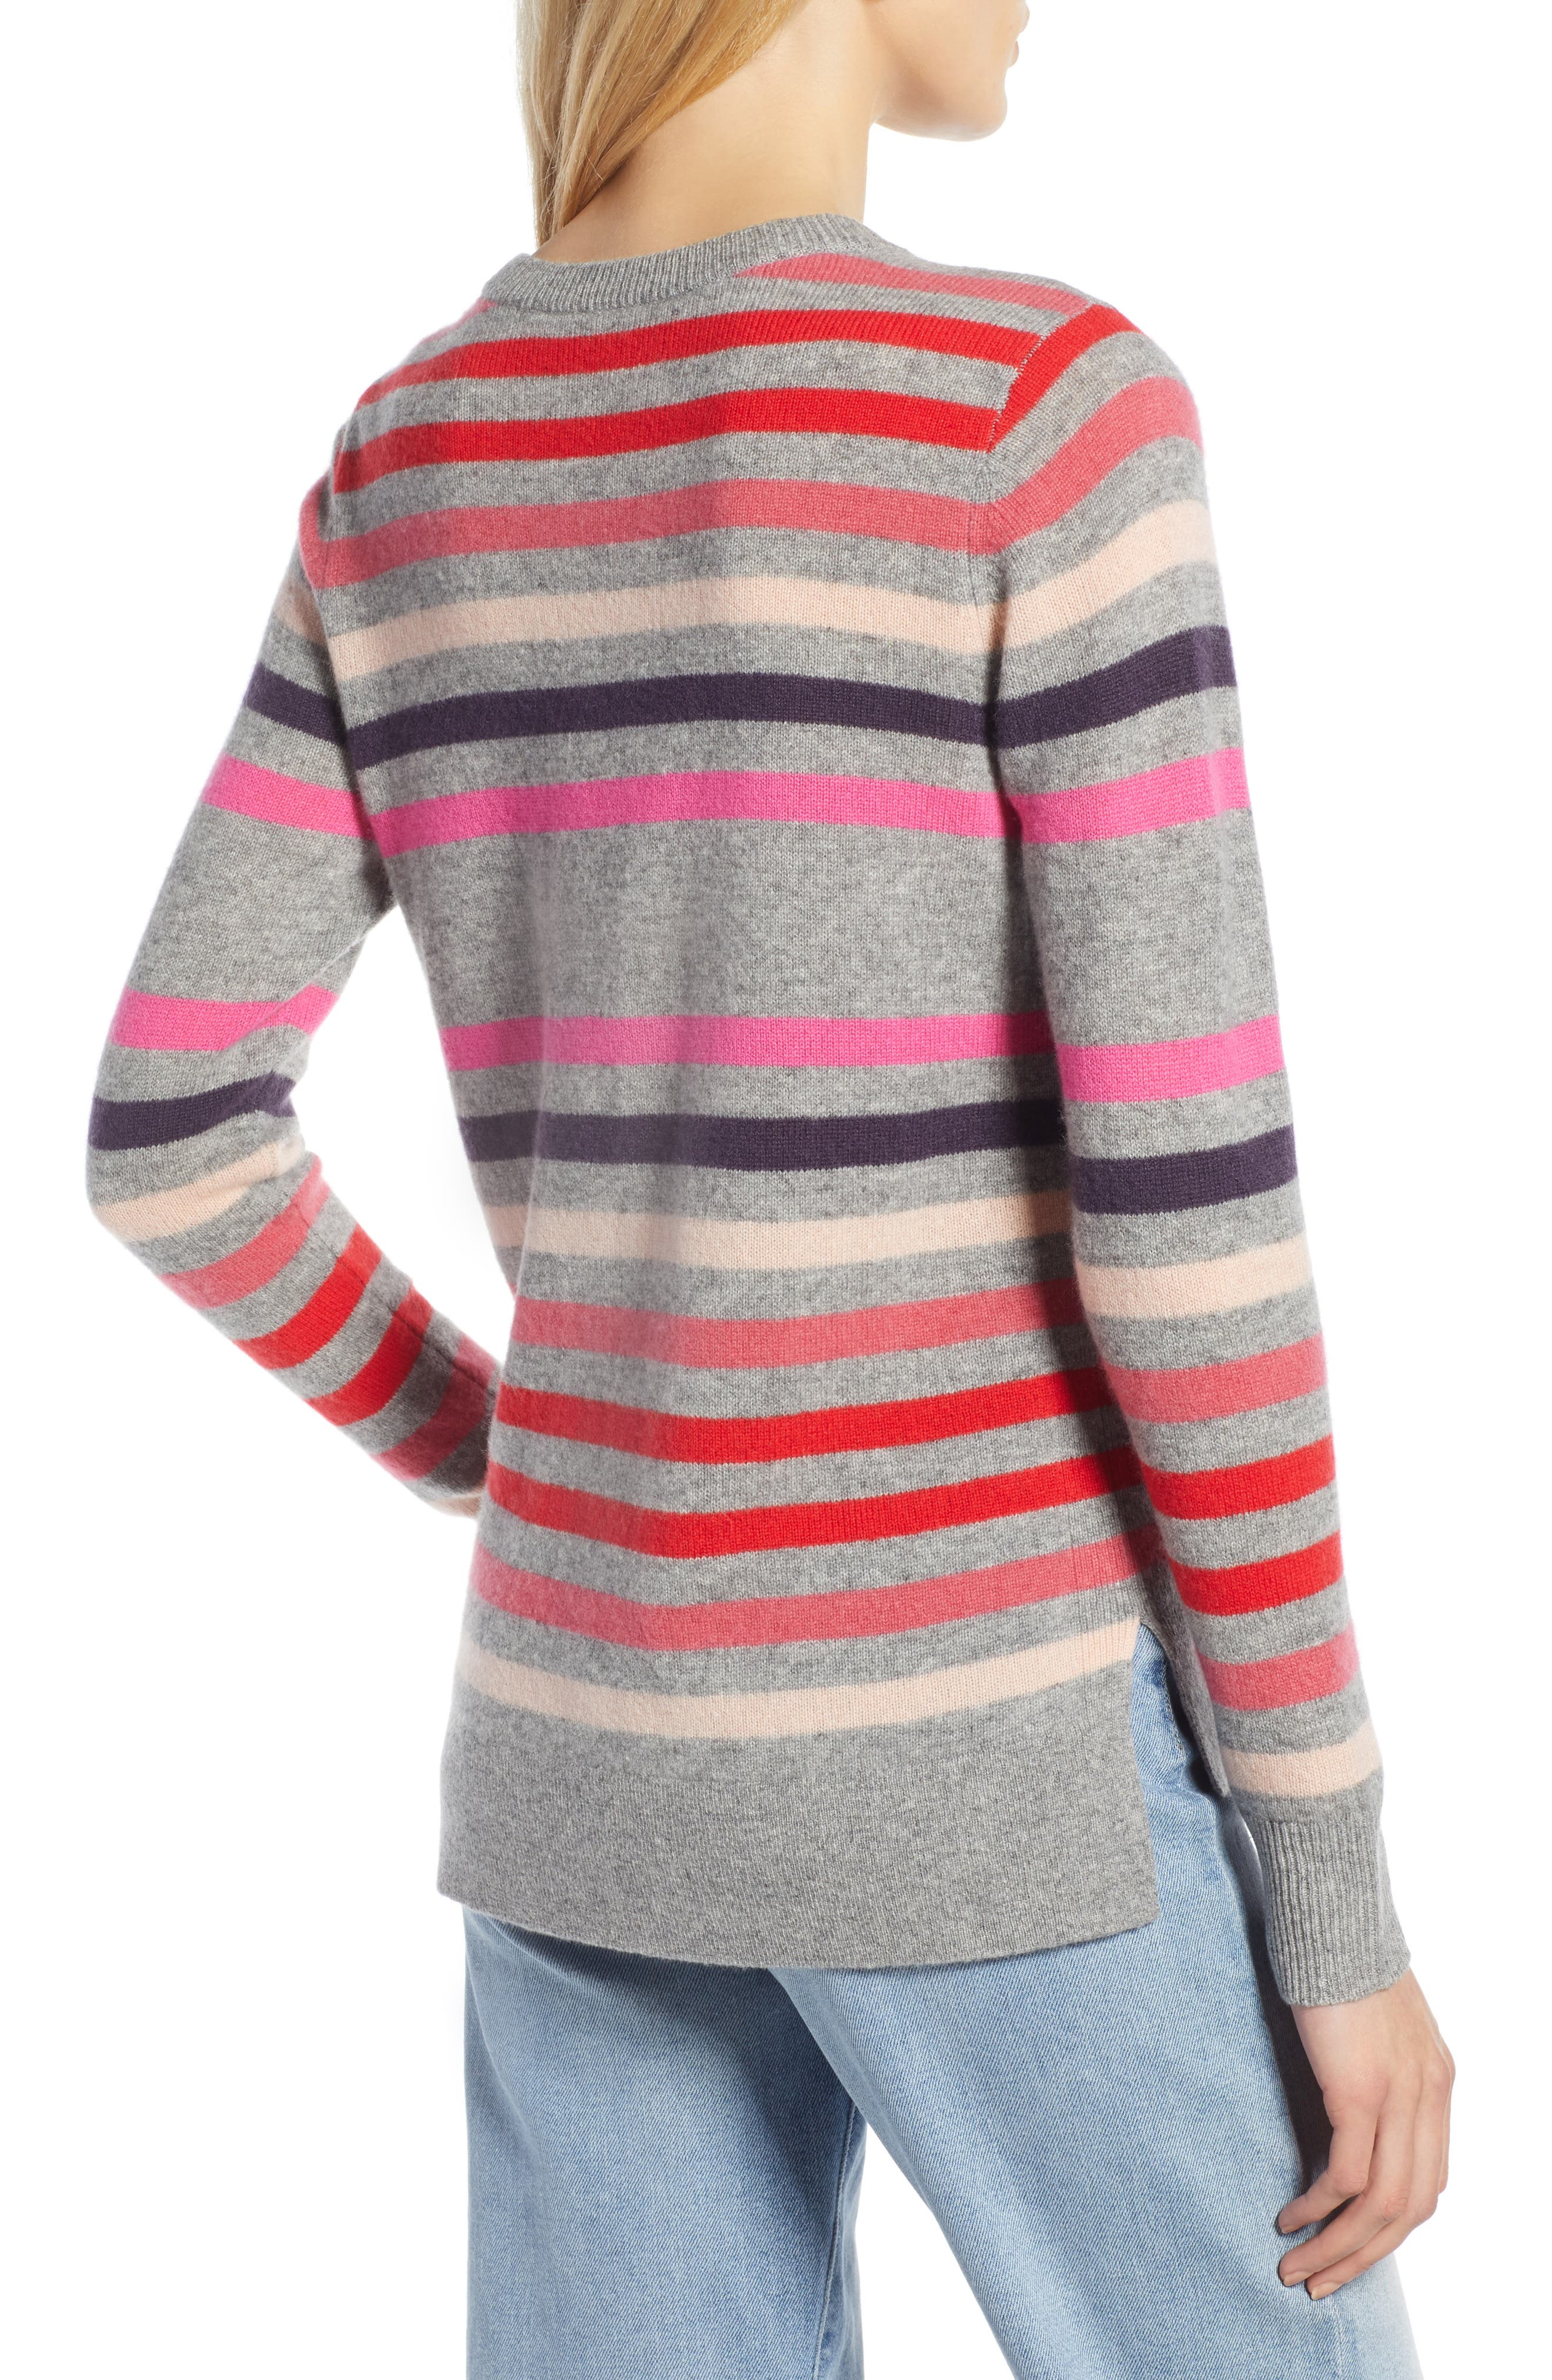 Crewneck Cashmere Sweater,                             Alternate thumbnail 2, color,                             GREY- PINK STRIPE